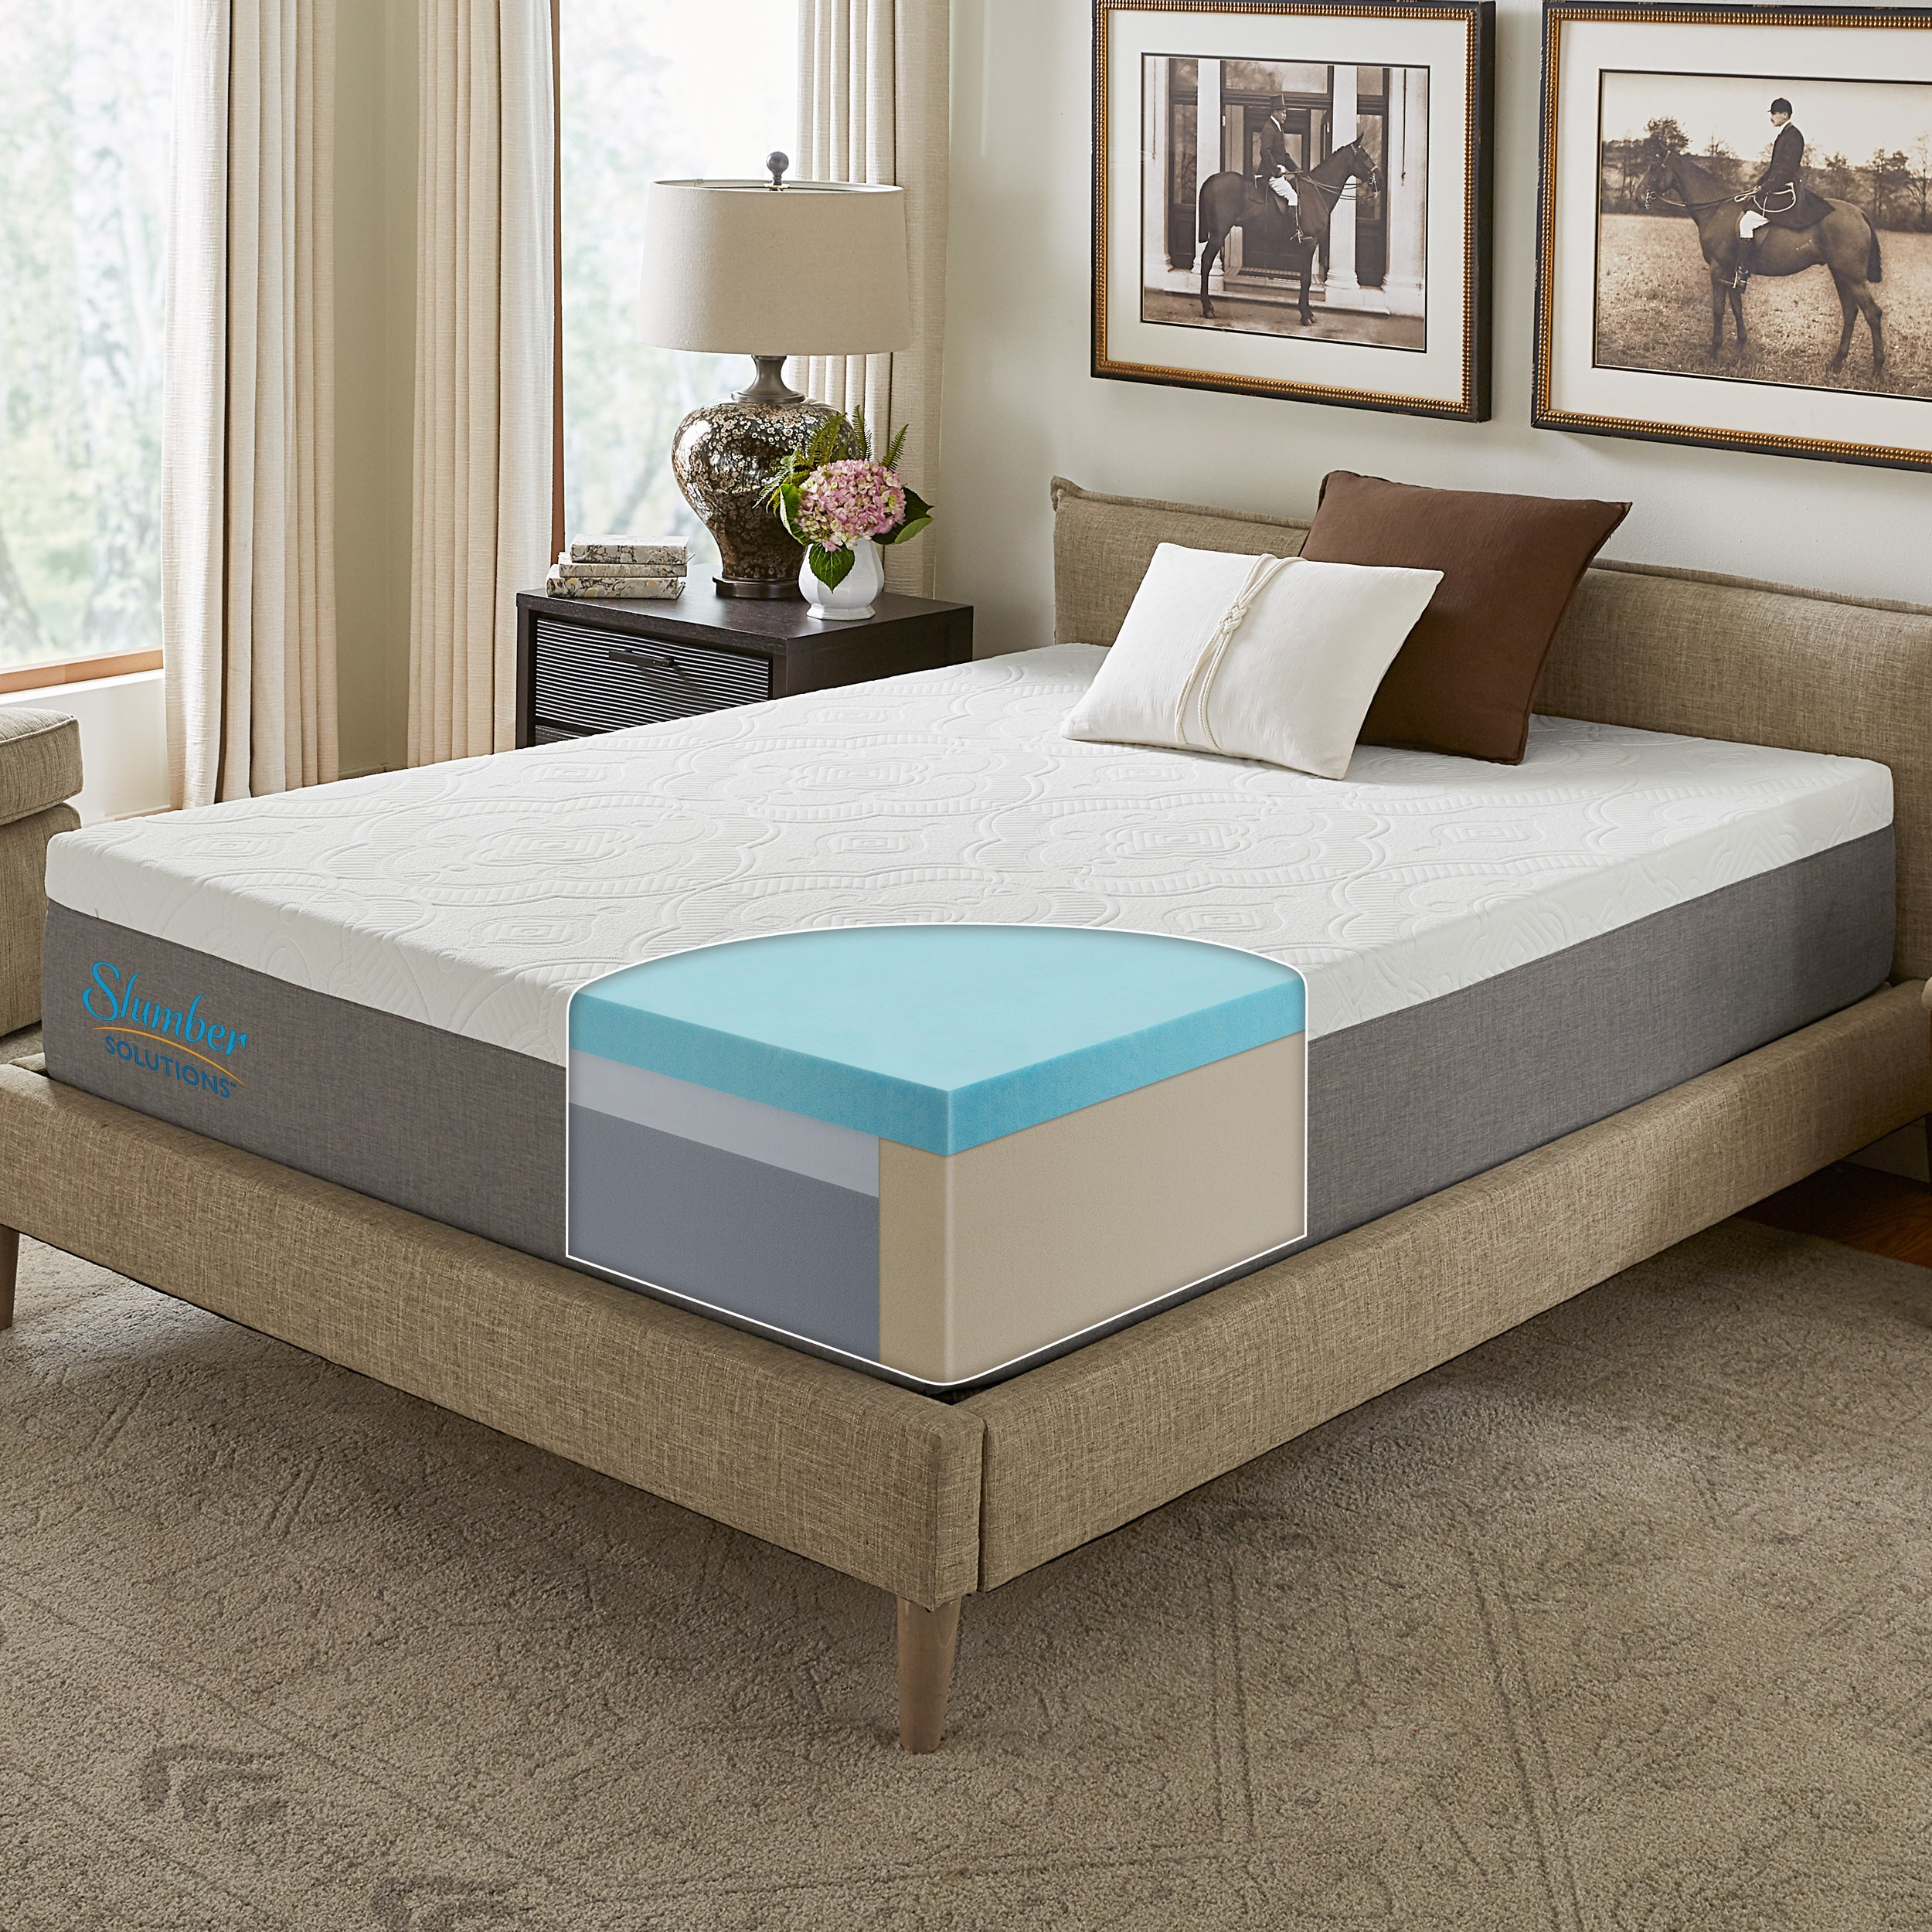 a98162023d7e8 Buy 14 Inch Mattresses Online at Overstock